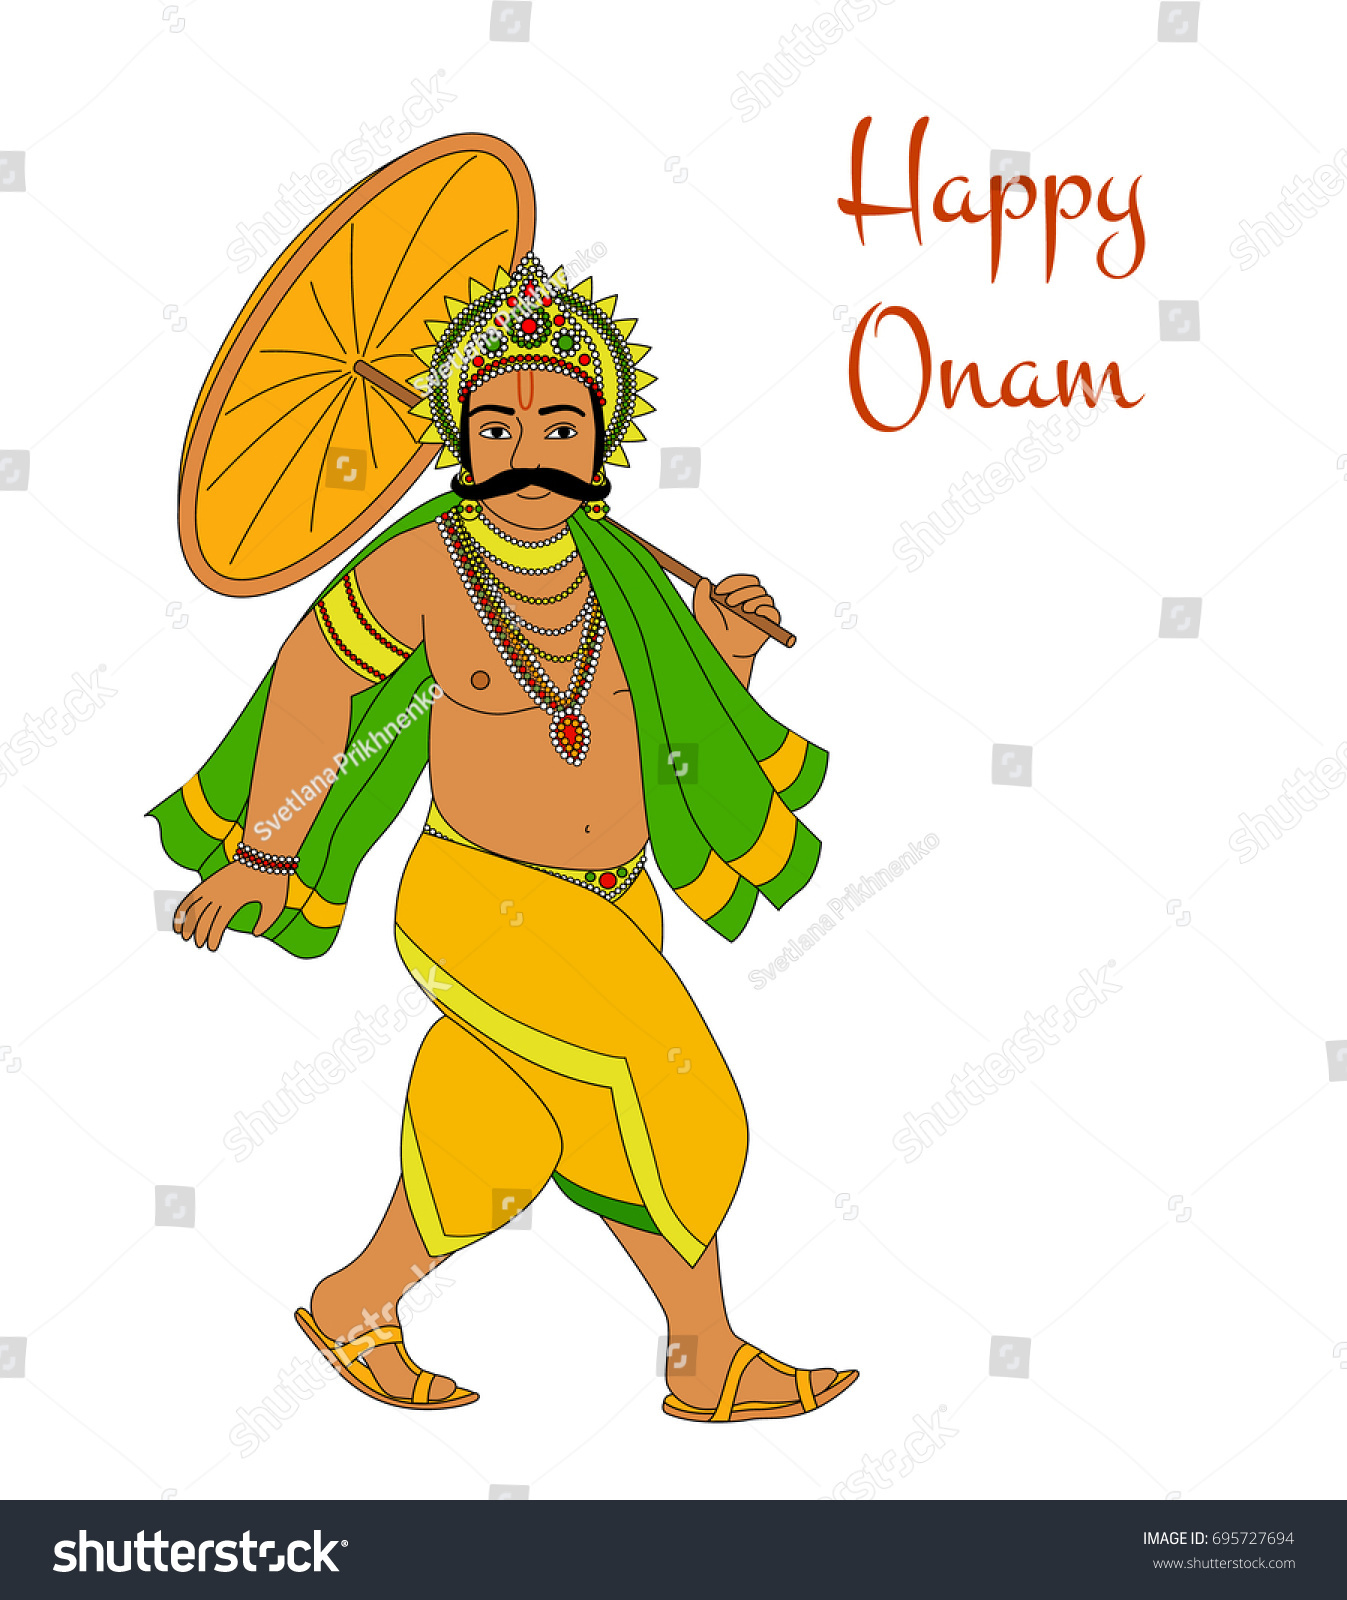 Happy Onam King Mahabali Greeting Card For South Indian Festival